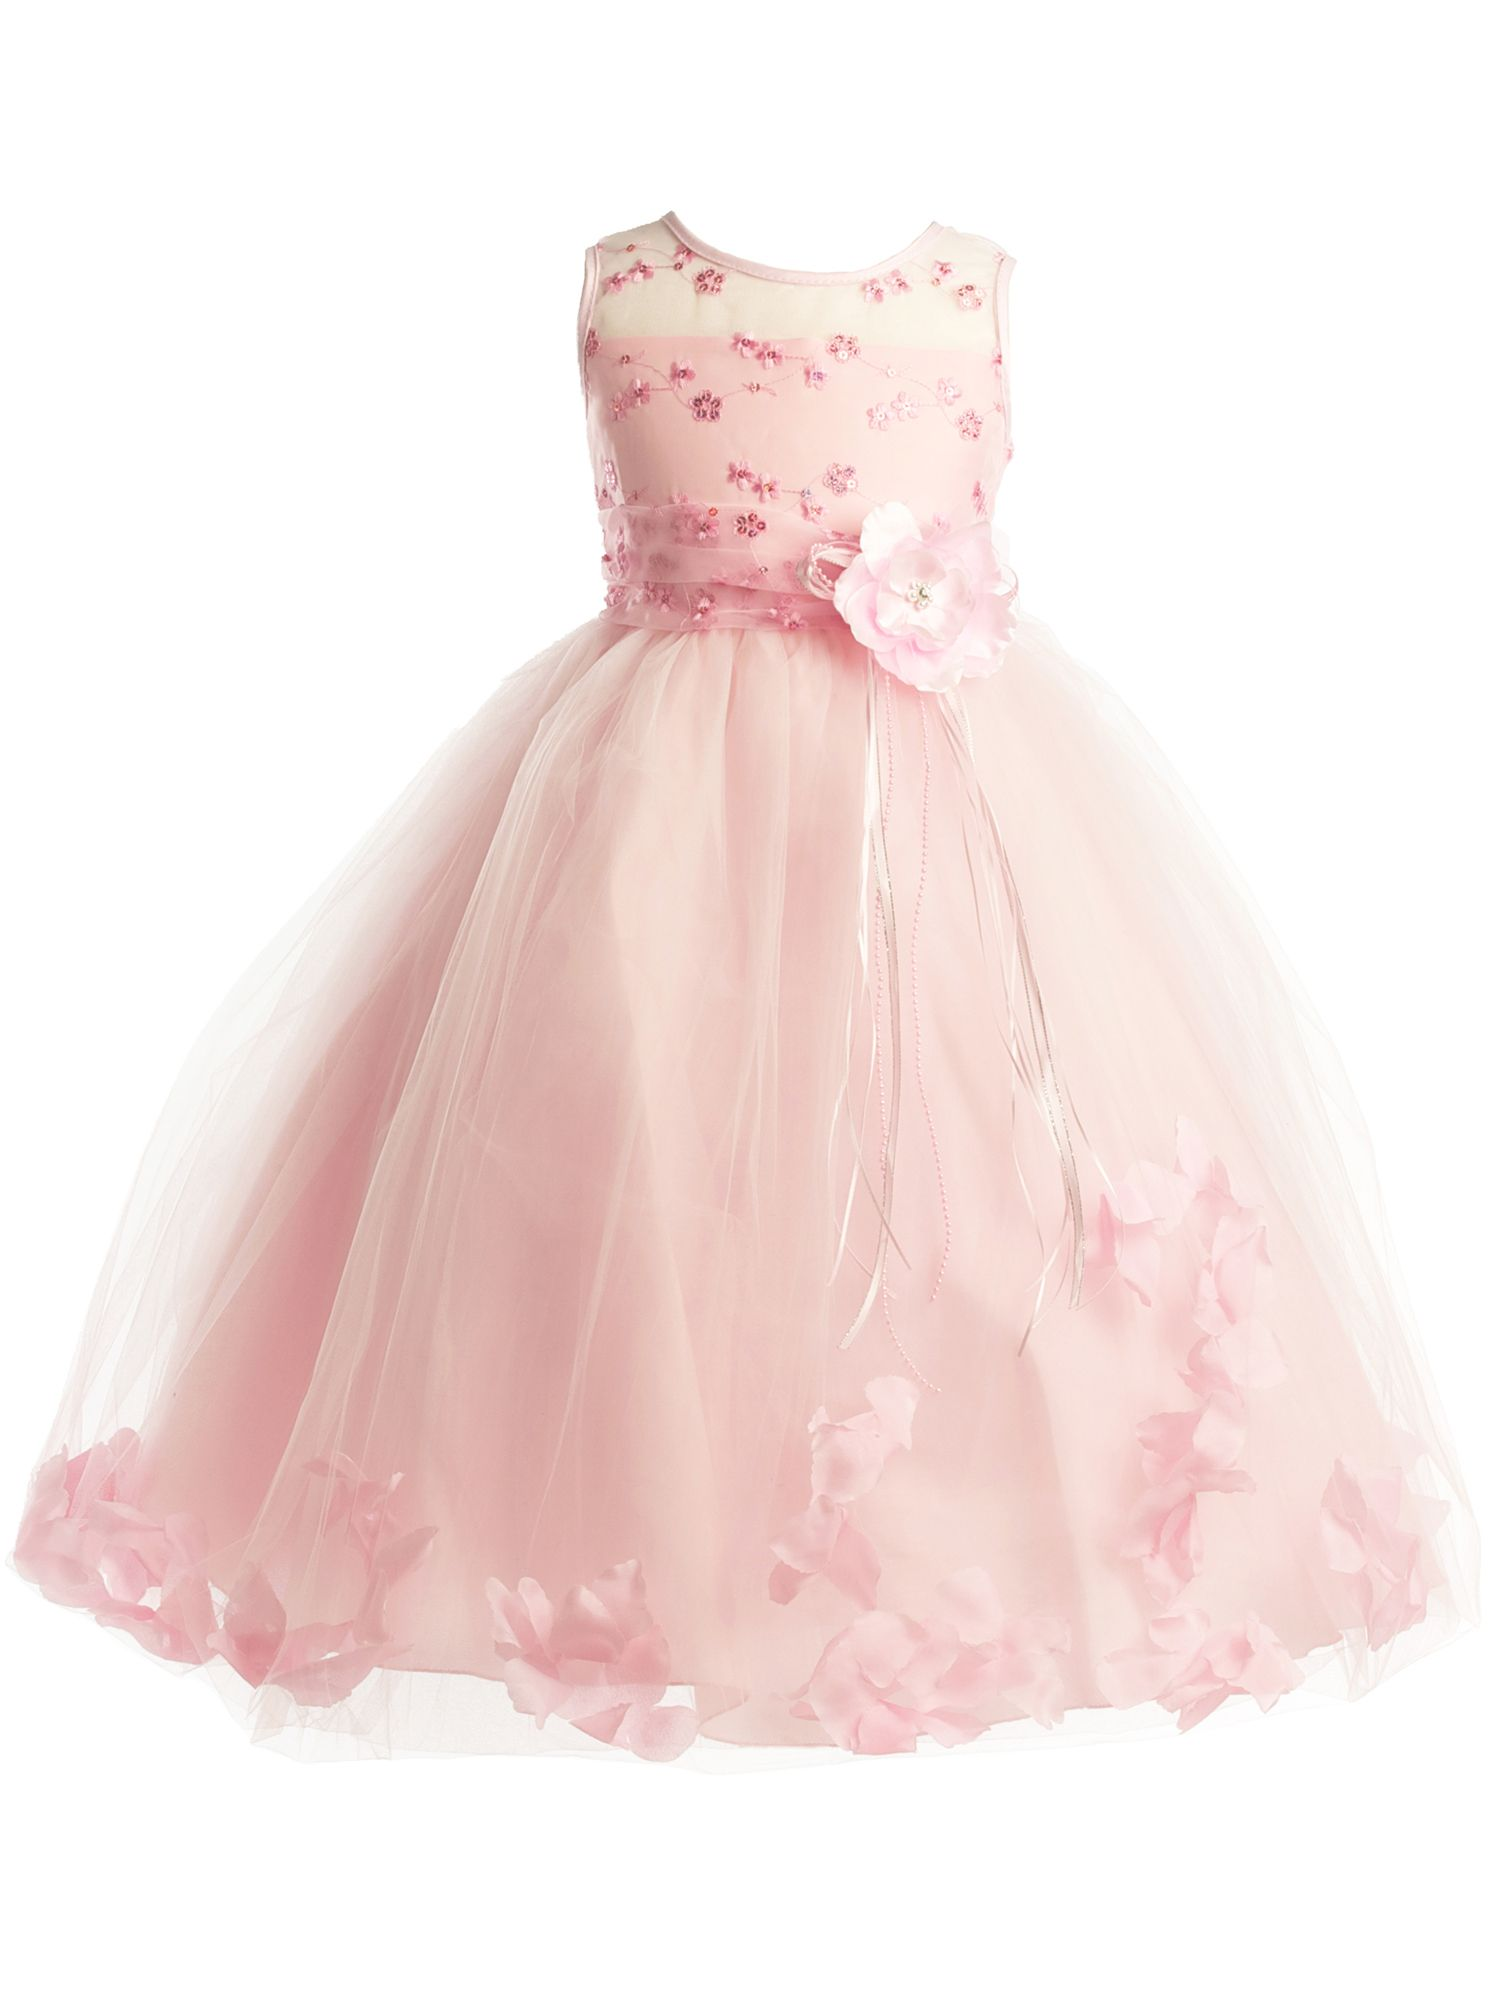 Democracy Apparel Dempsey Marie Girls Embroided Flower Girl Dress With Floating Petals Sizes 2 To 12 Walmart Com Dresses Flower Girl Flower Girl Dresses [ 2000 x 1500 Pixel ]